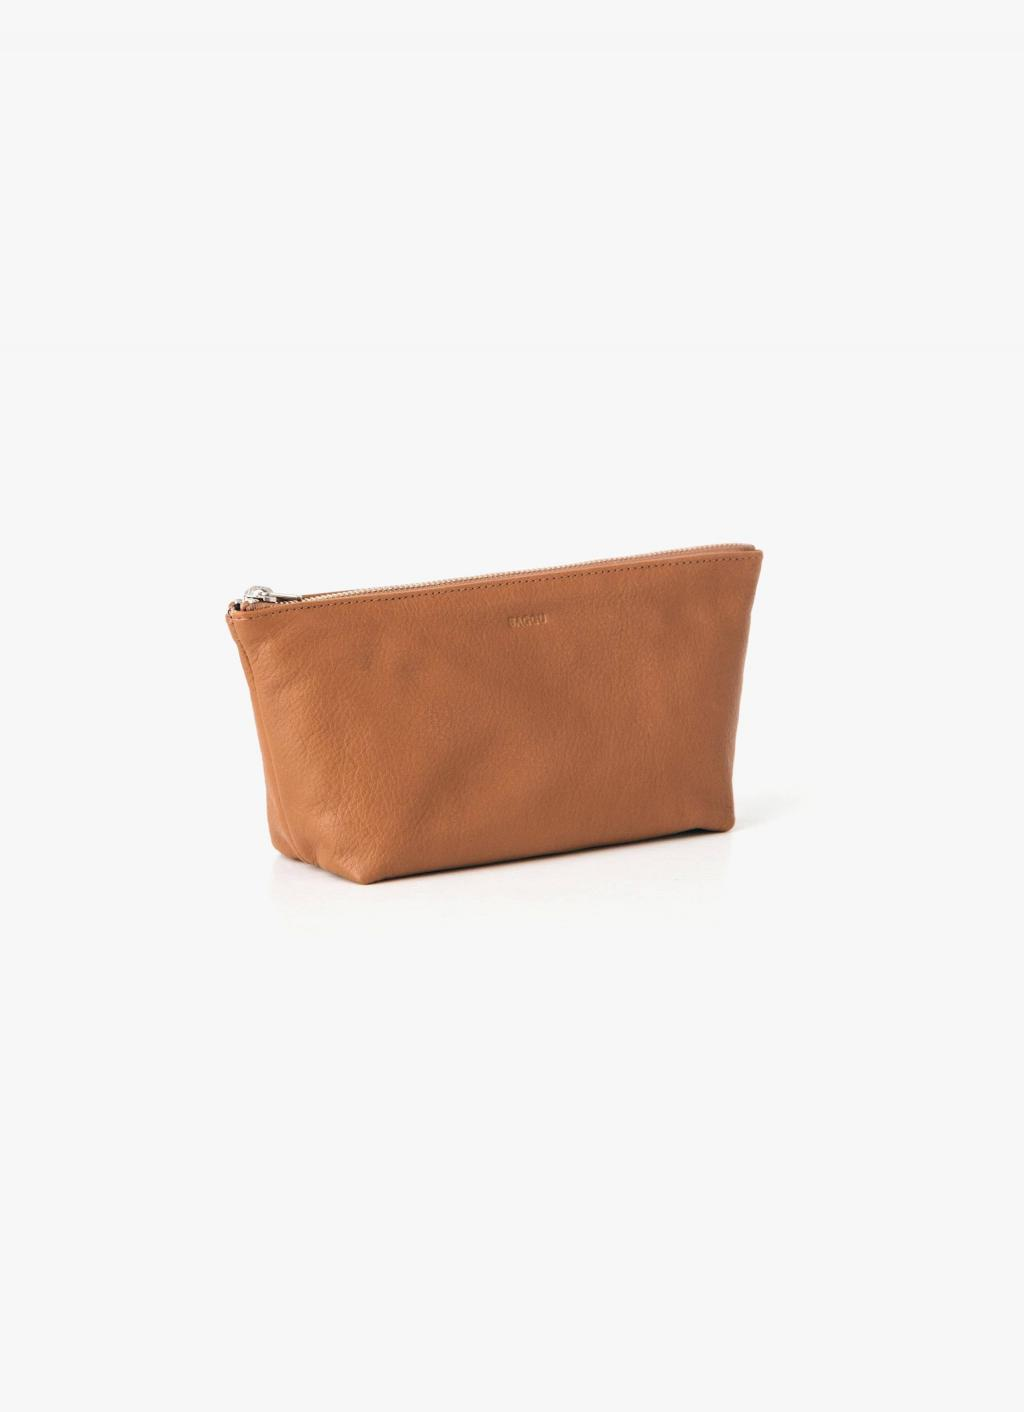 Baggu Leather Cosmetic Pouch - Saddle